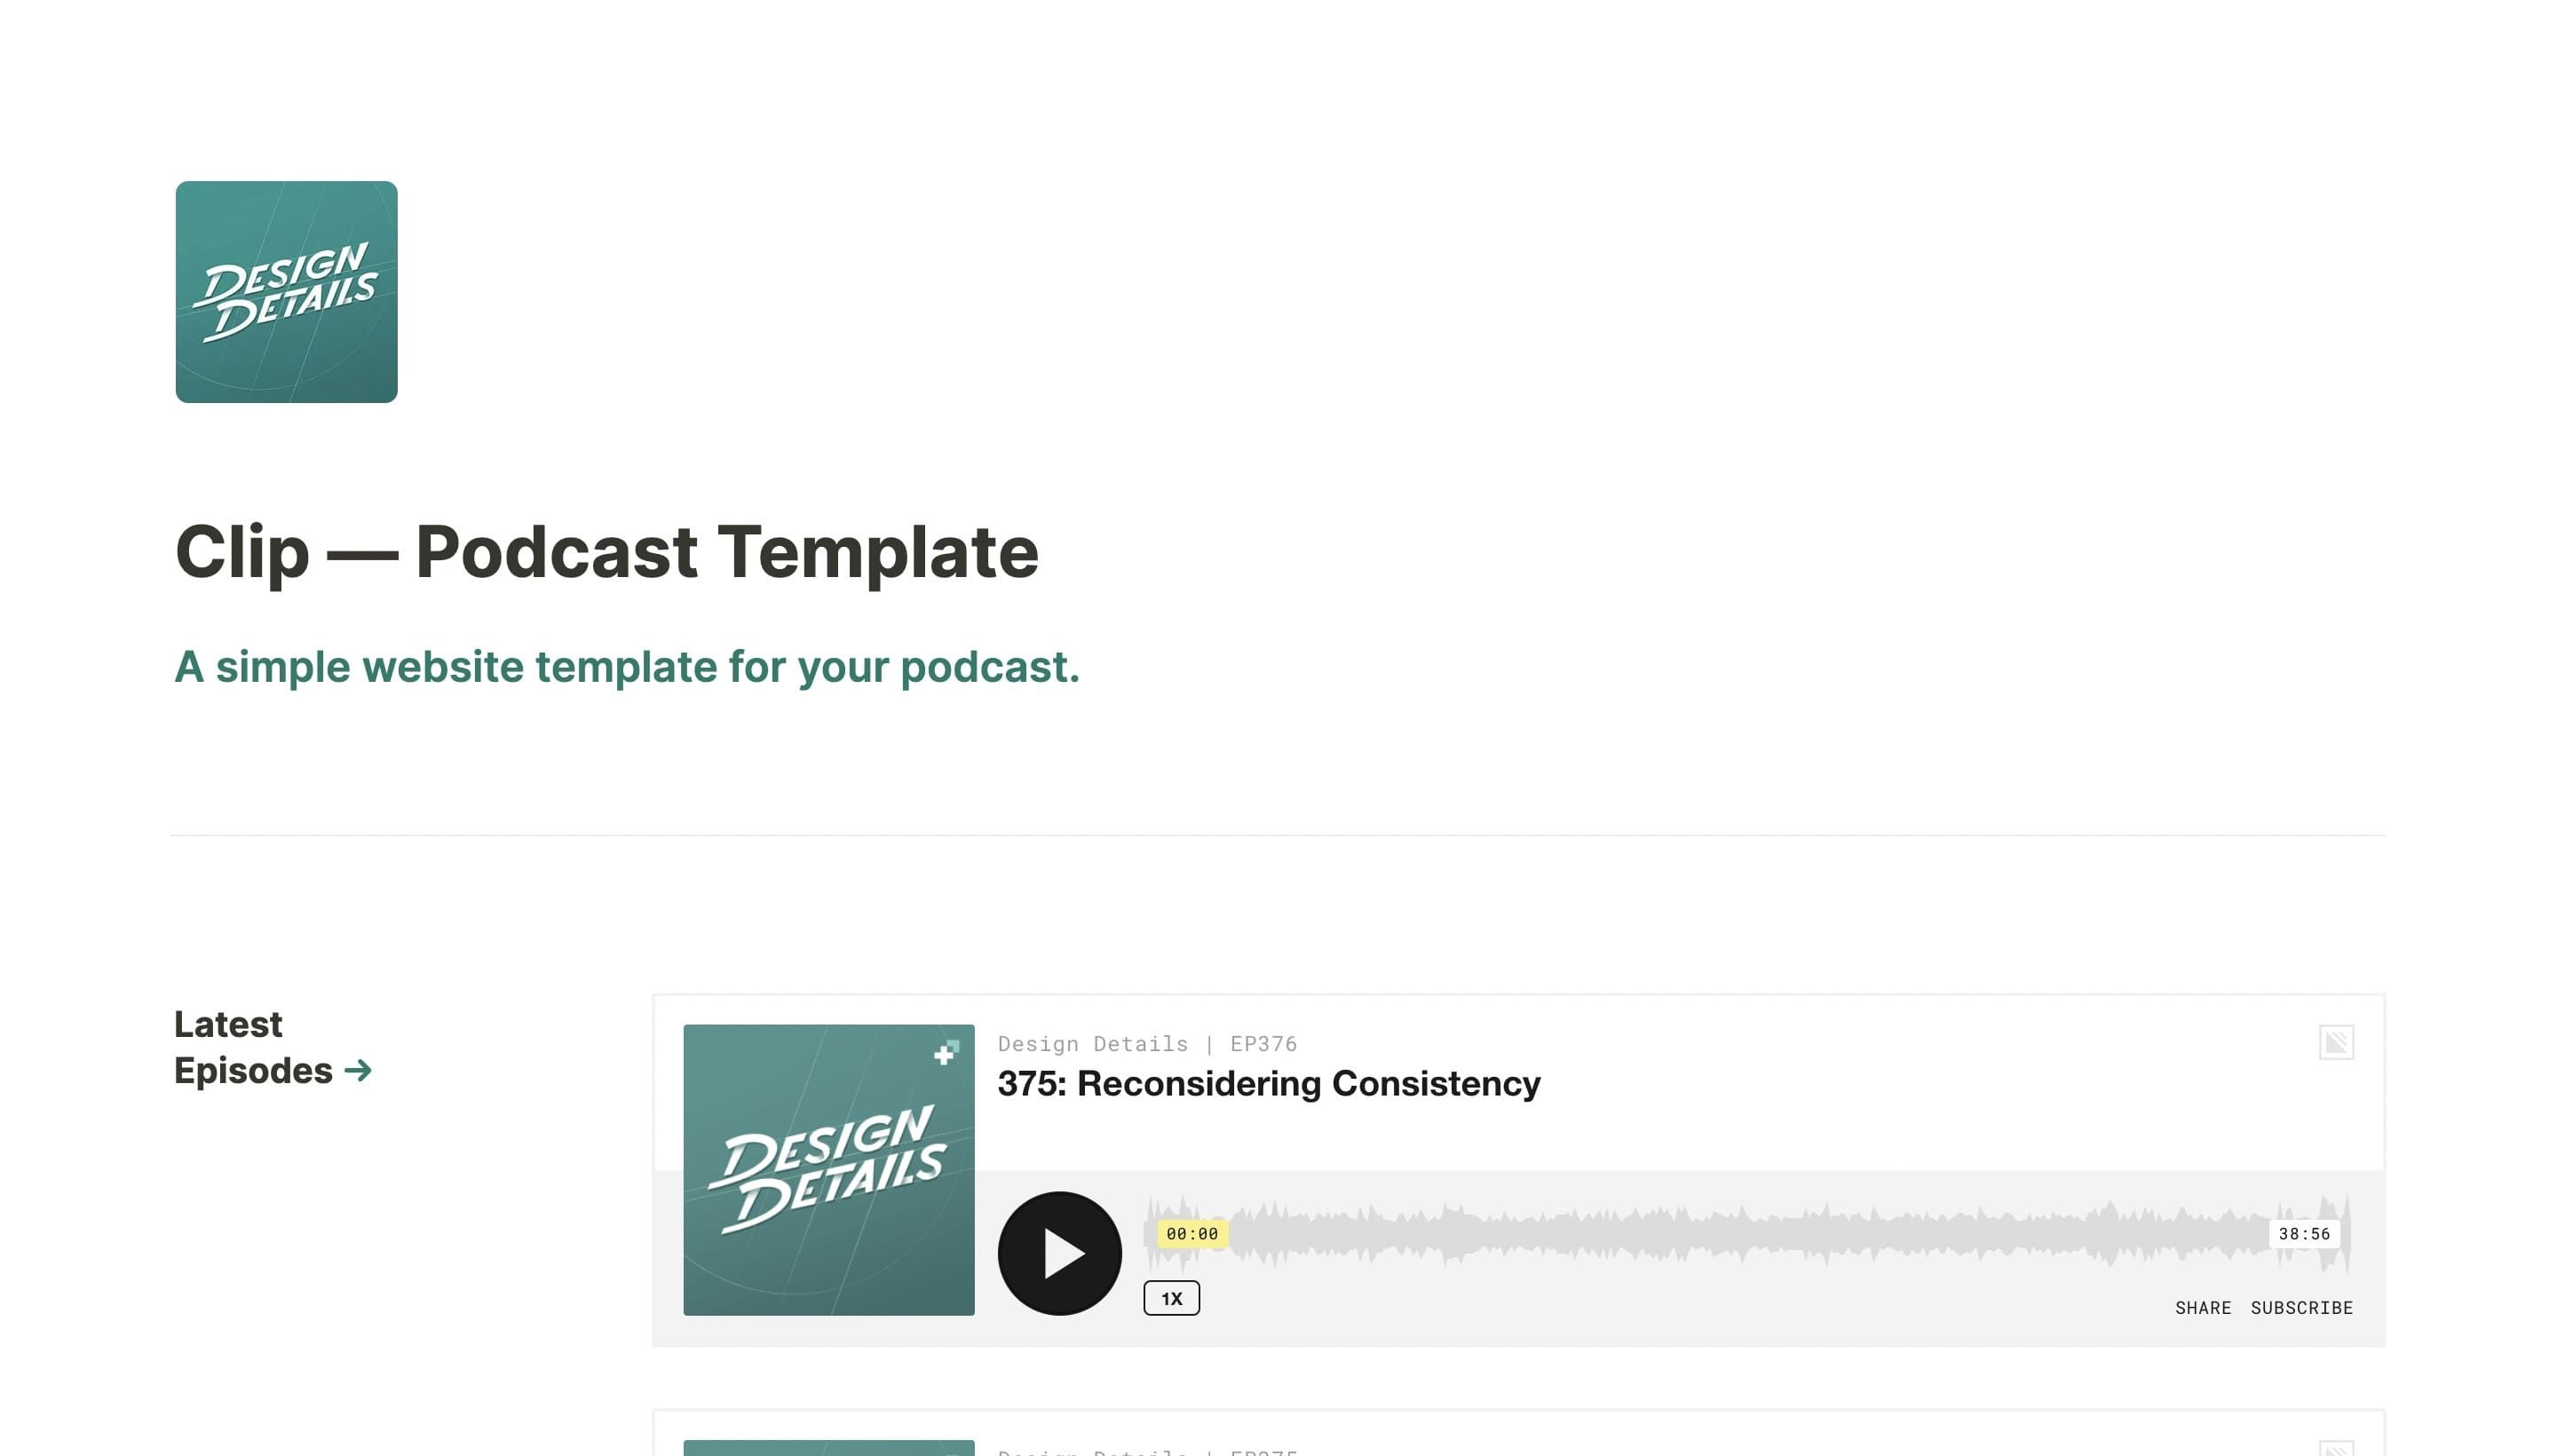 Clip — Podcast Template